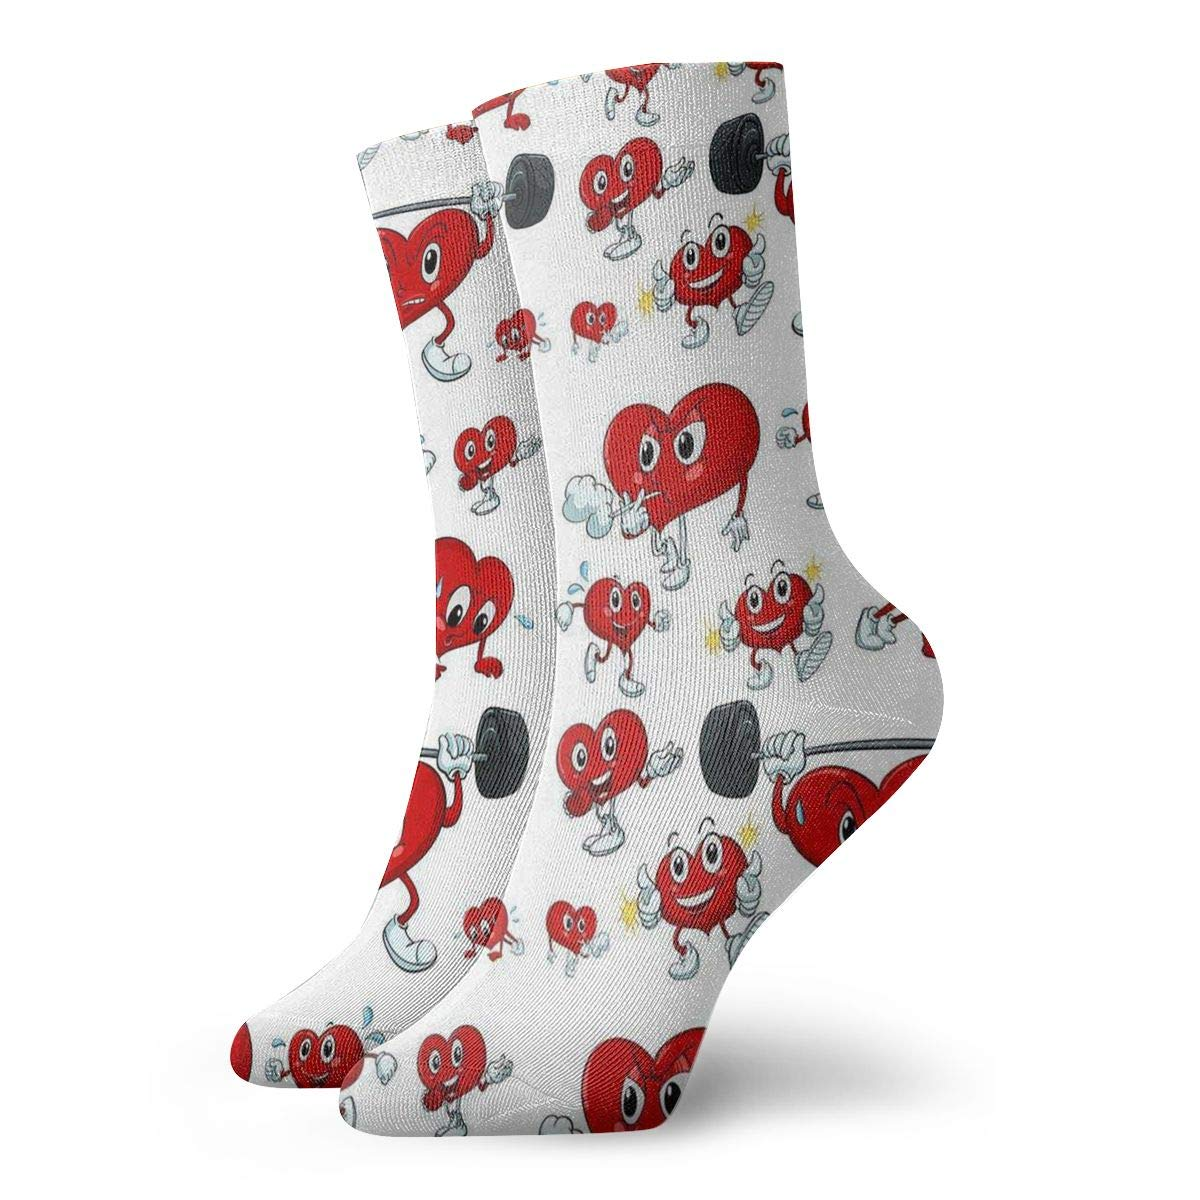 Cartoon Heart Work Out Unisex Funny Casual Crew Socks Athletic Socks For Boys Girls Kids Teenagers